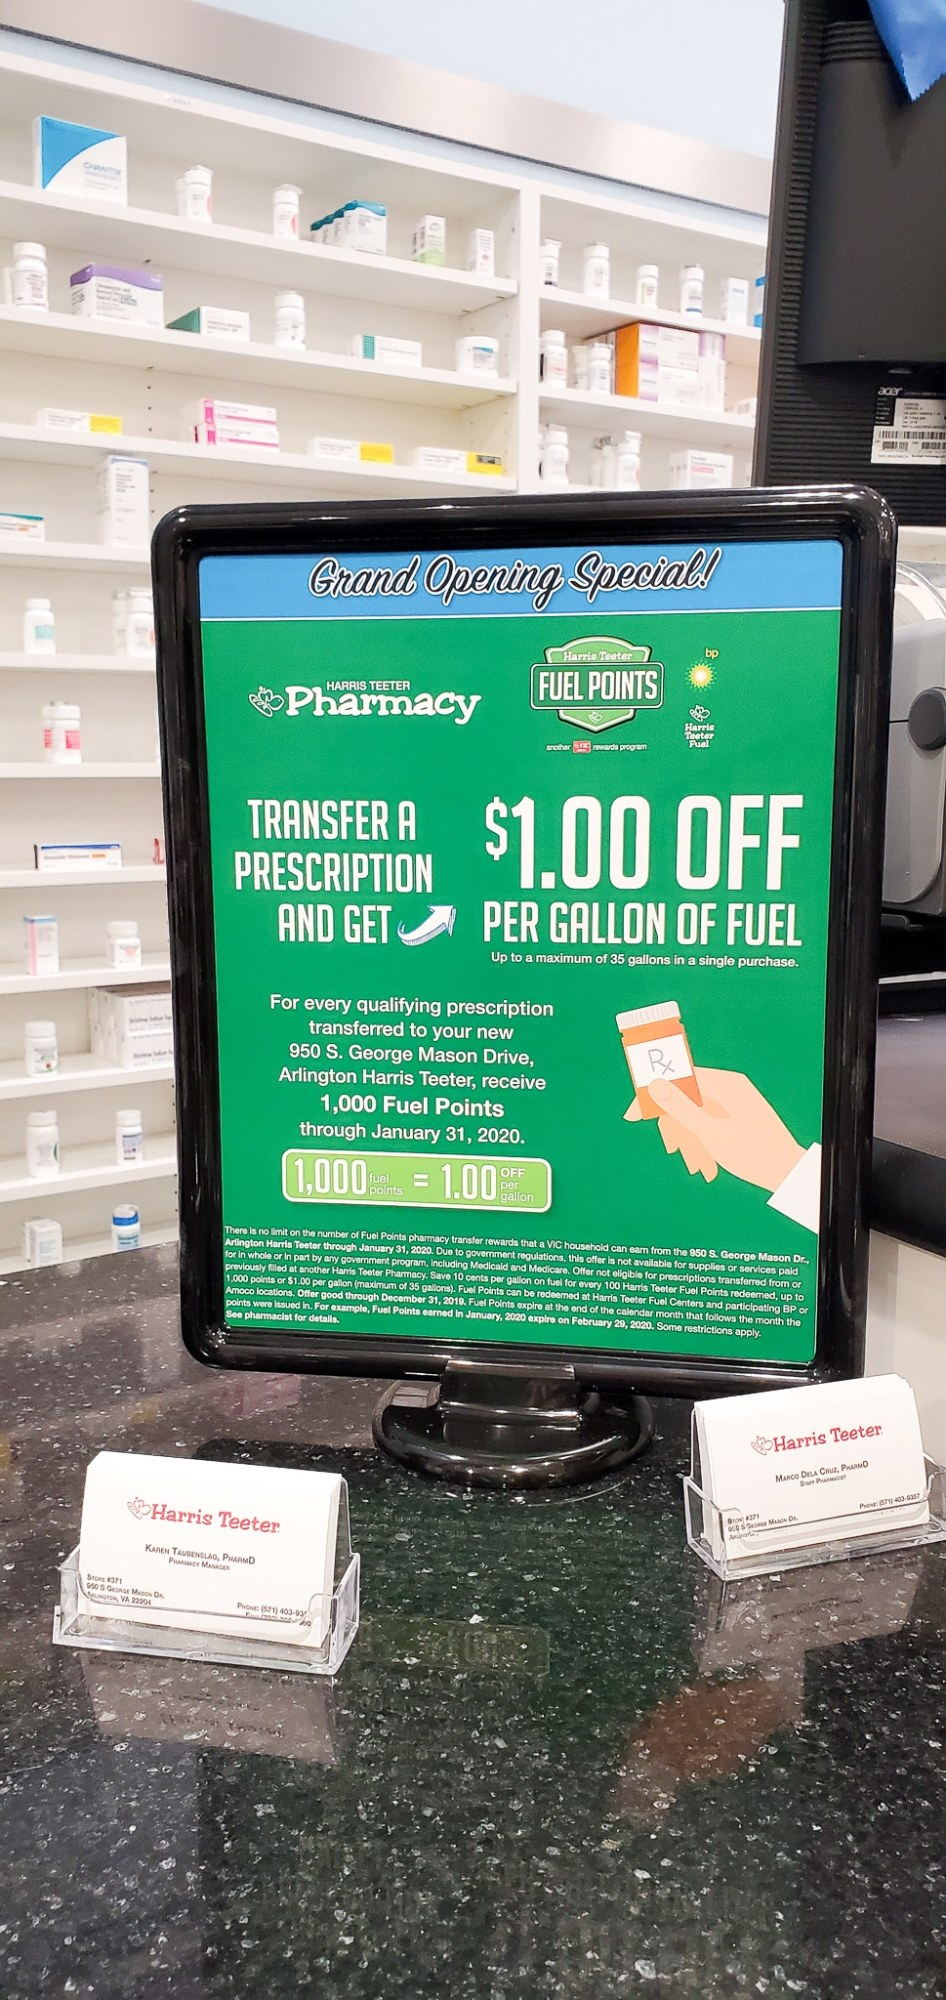 Perscription Transfer Fuel Points Harris Teeter. Happening right now at your local Harris Teeter. Transfer any of your perscriptions to the Harris Teeter Pharmacy to earn $1.00 off per gallon of guel at participating gas stations.